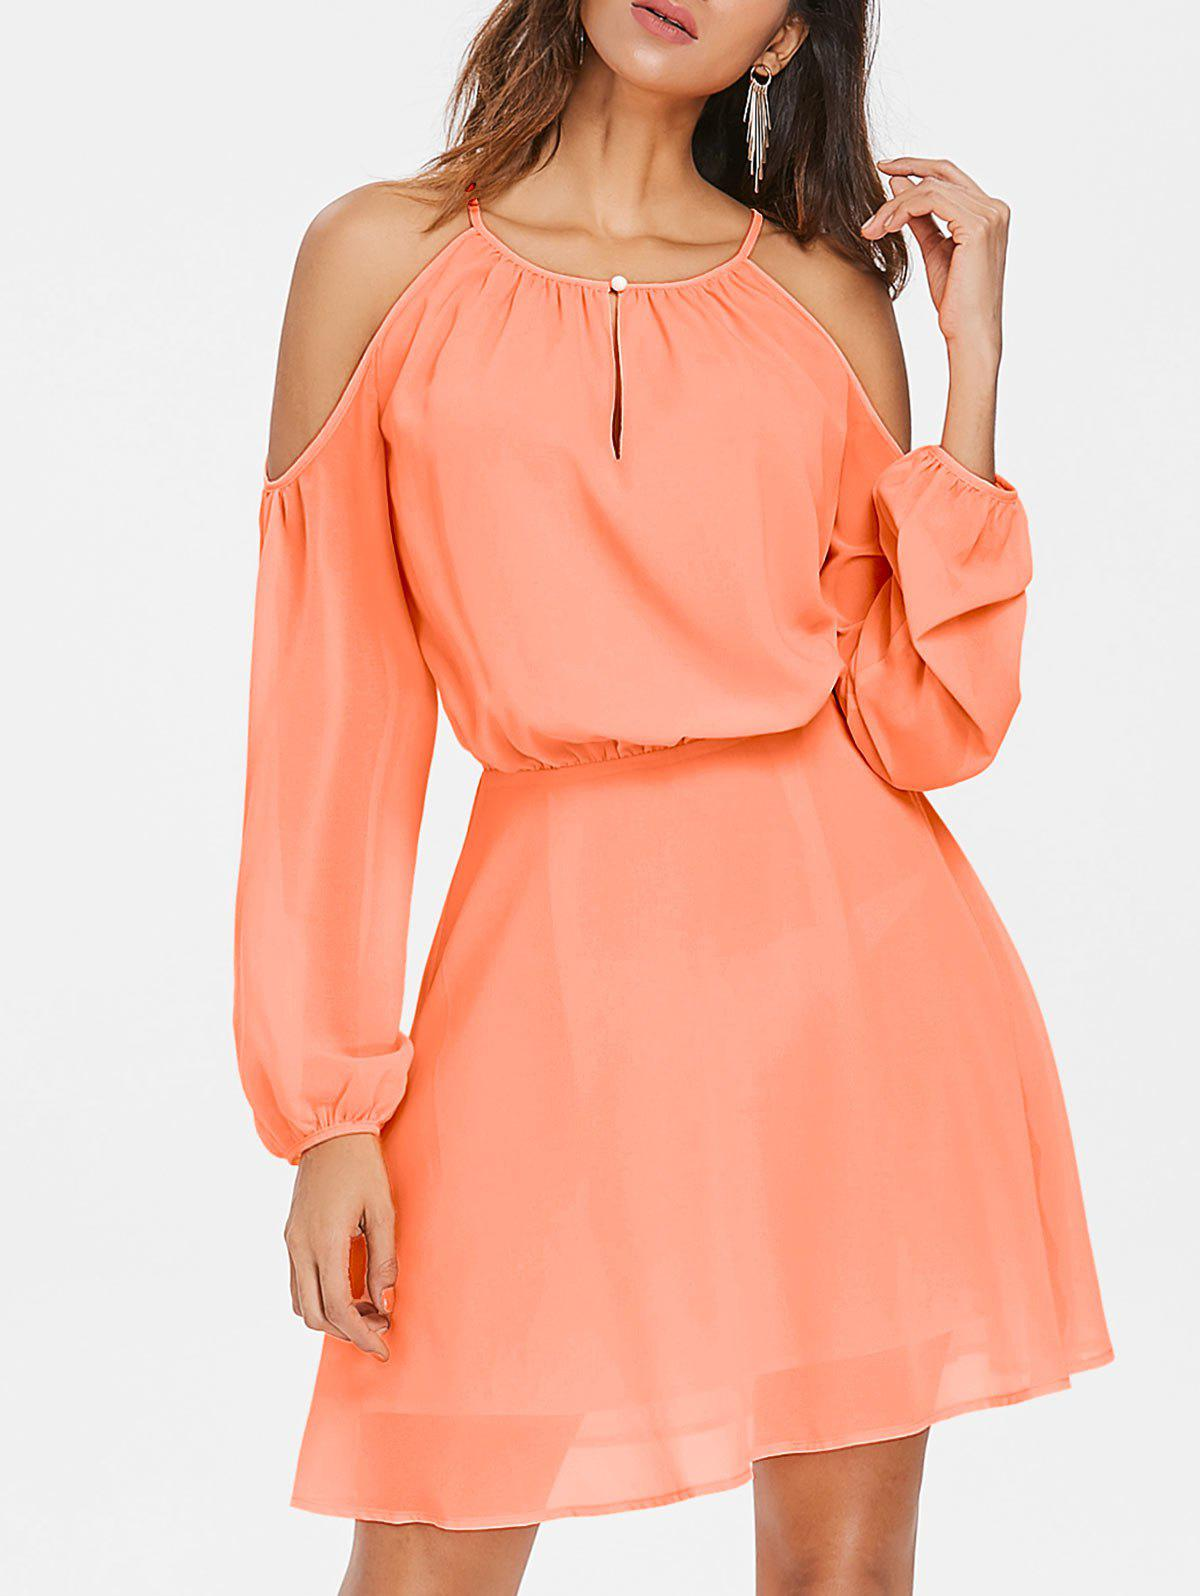 Cold Shoulder Short Blouson Dress - ORANGE PINK S